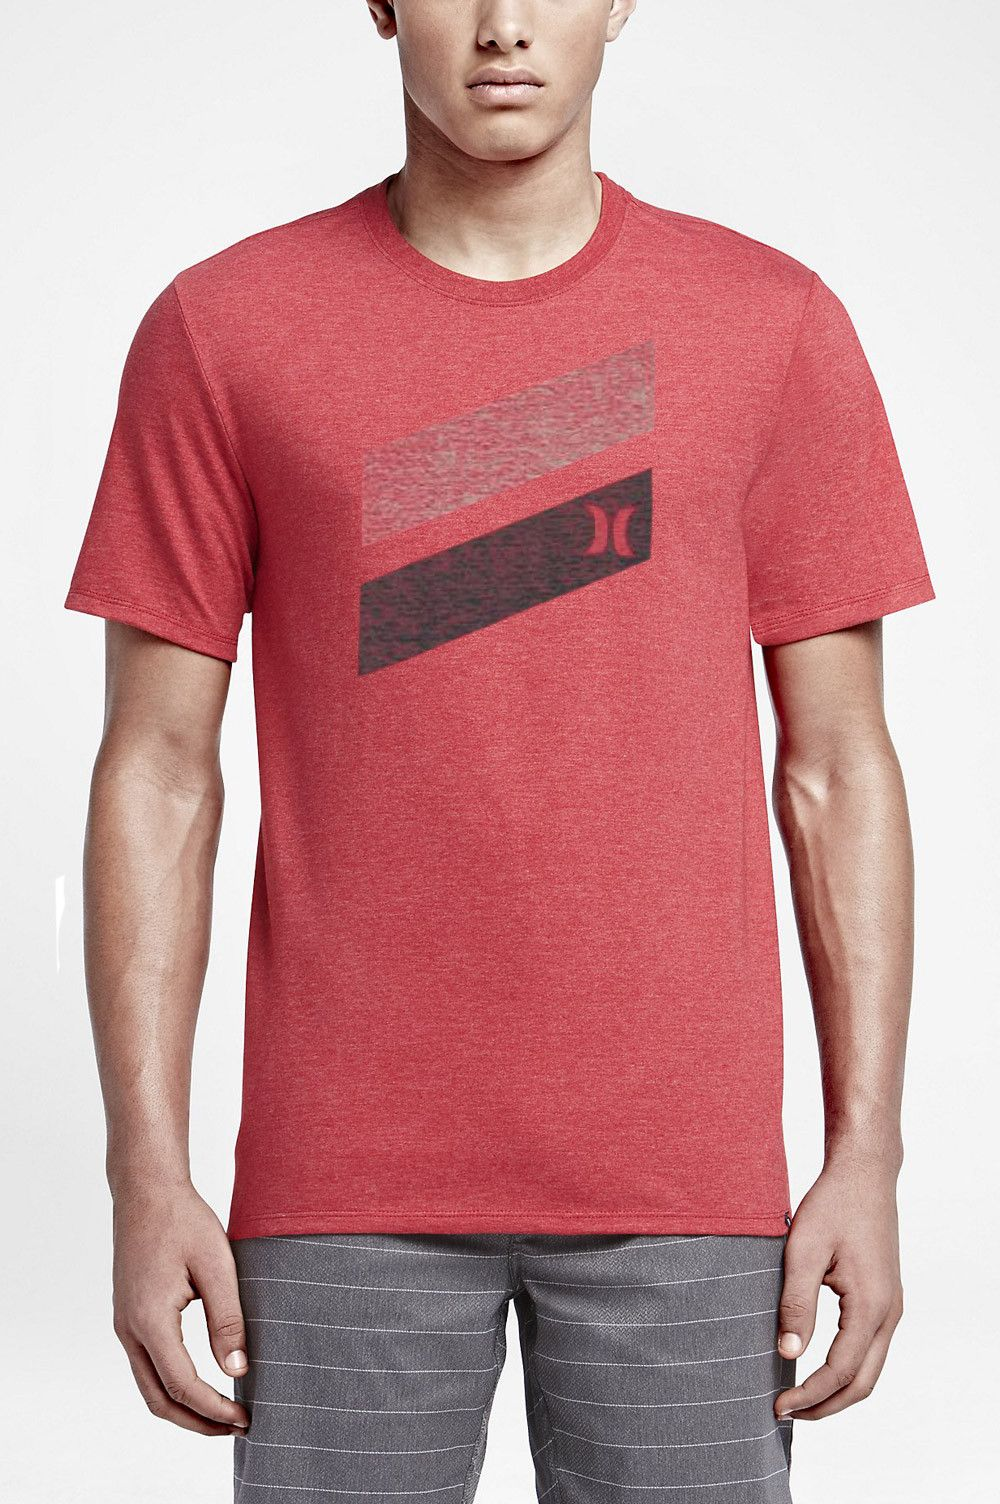 The Hurley Icon Slash Push Through Men's T-Shirt features a push-through  screen